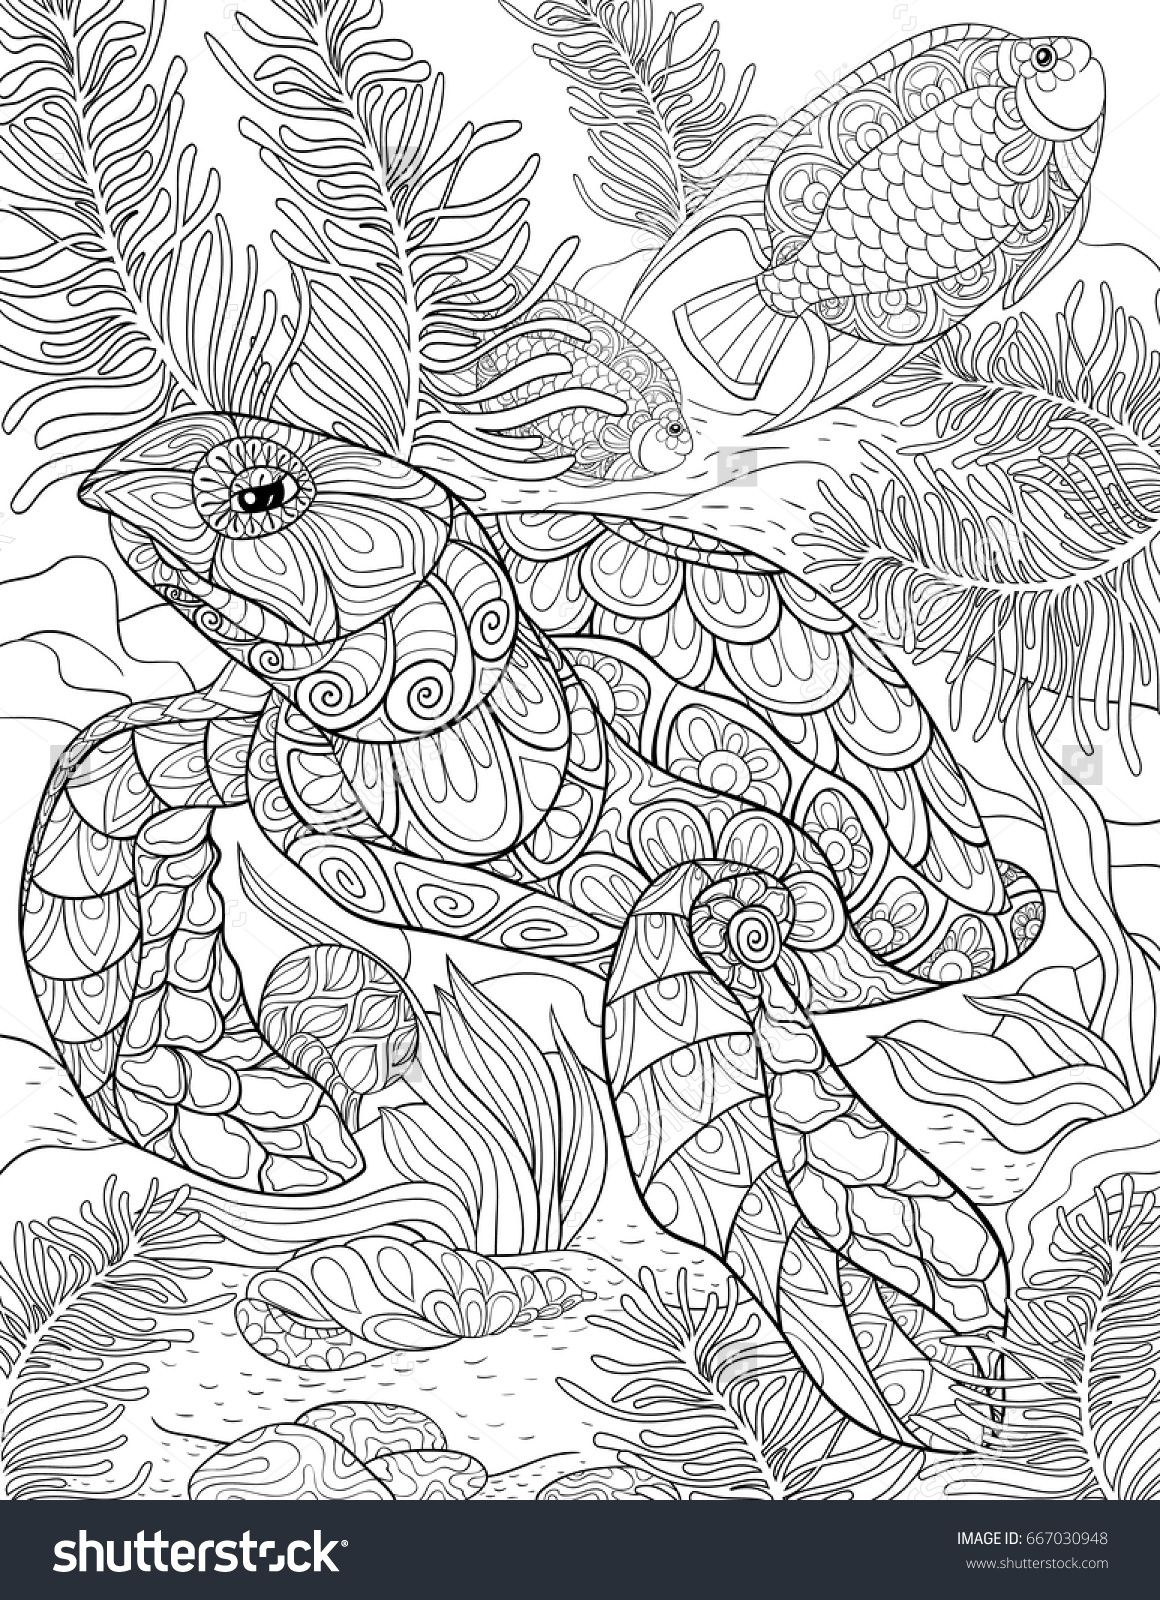 Adult Coloring Page Book A Turtle Line Art Style Illustration